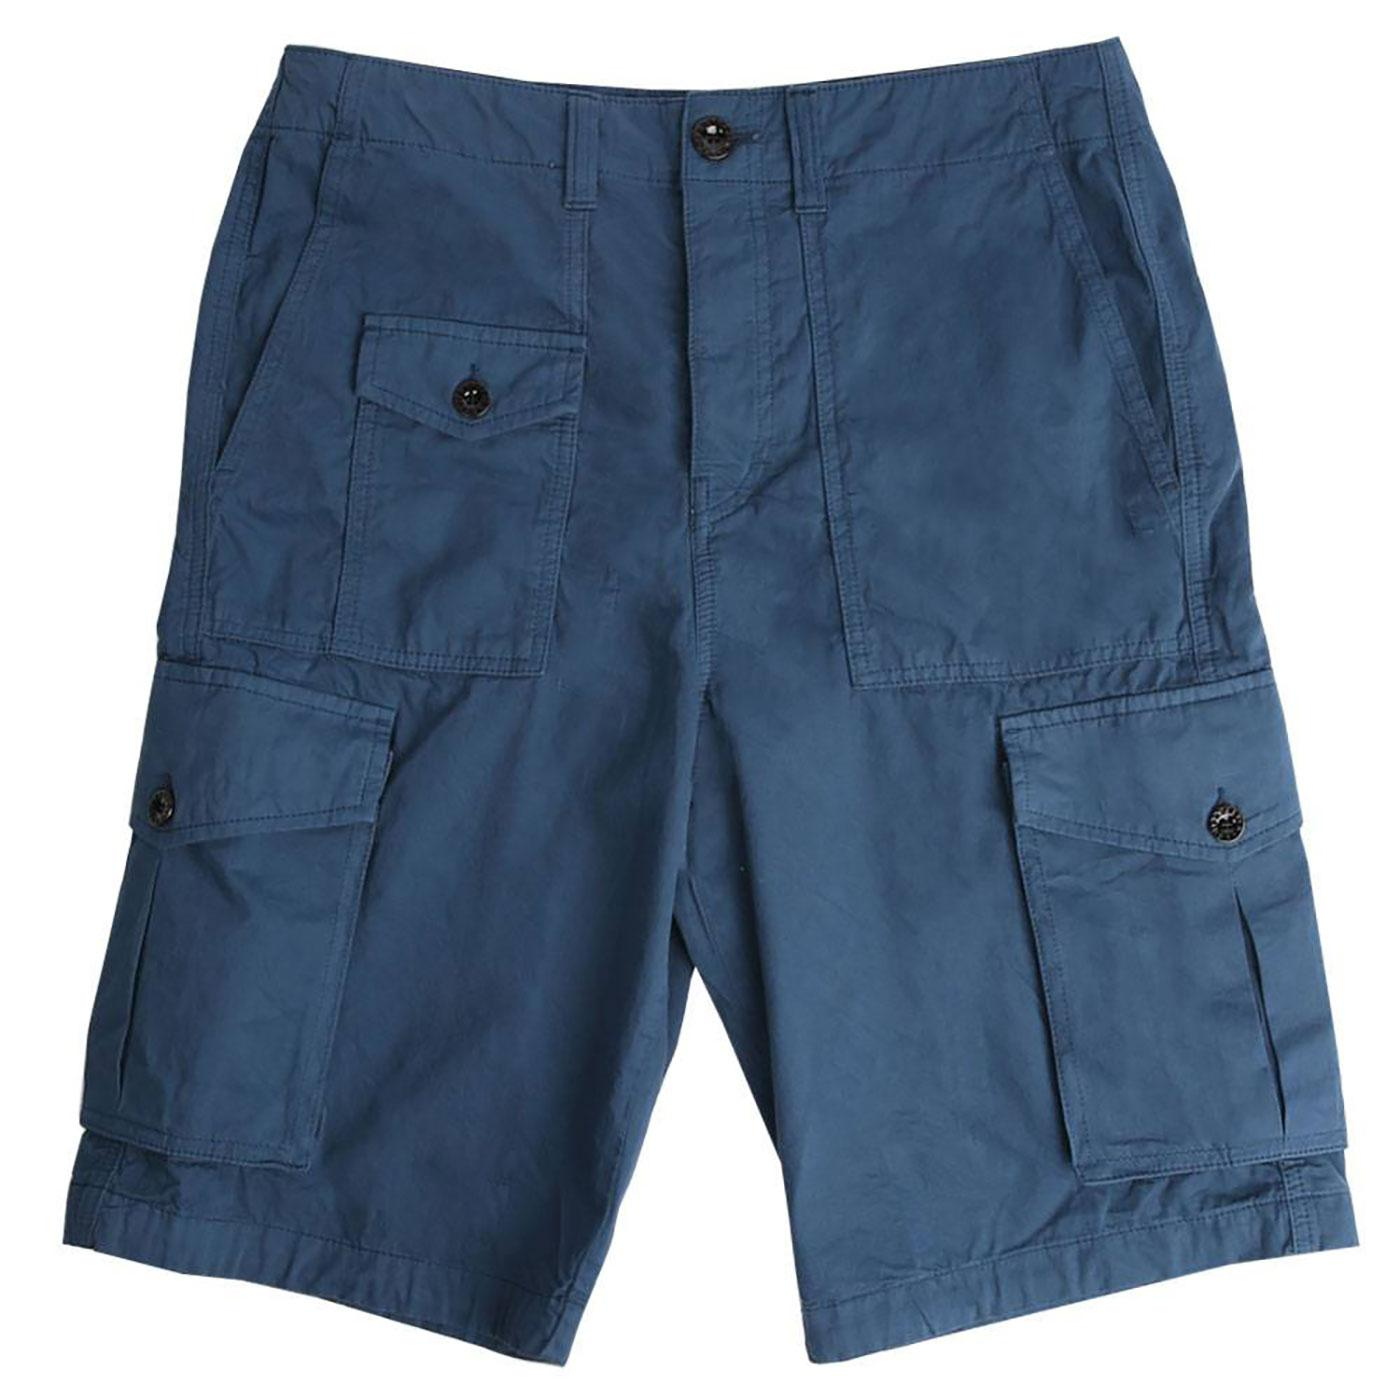 PRETTY GREEN Men's Retro Twill Cargo Shorts BLUE